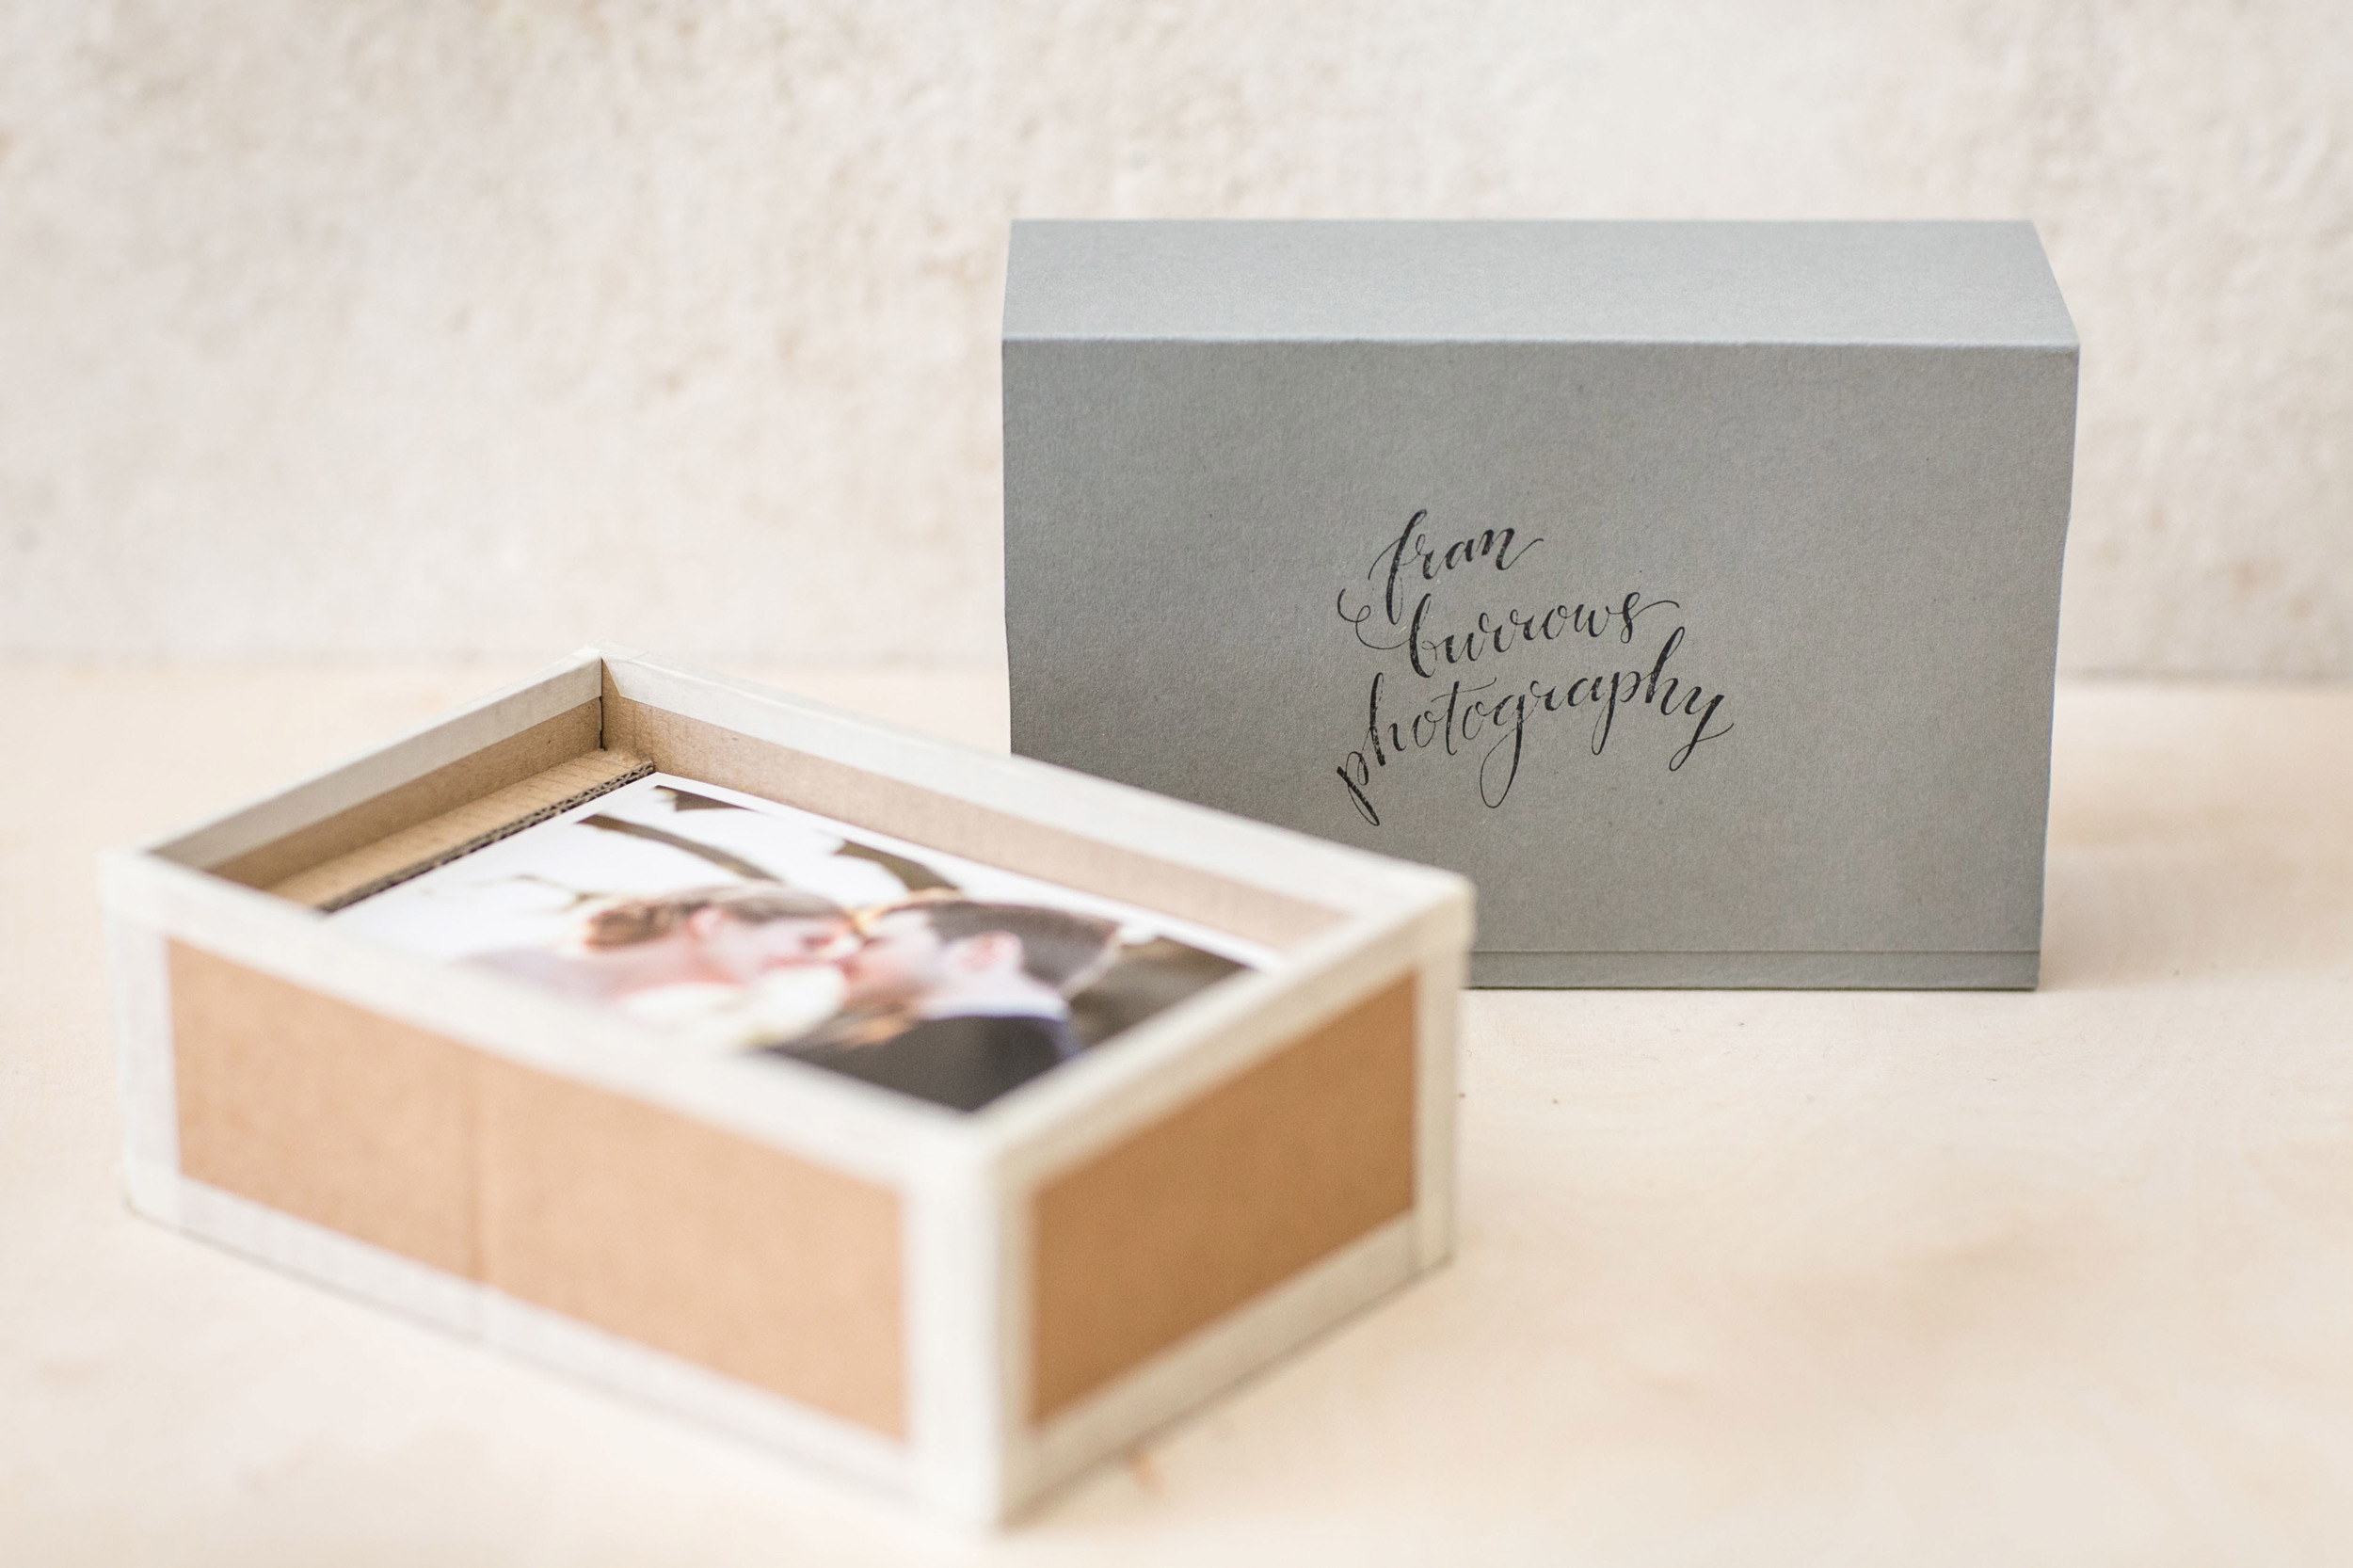 Wedding-Photography-Packaging-Fran-Burrows-Berlin-1.jpg